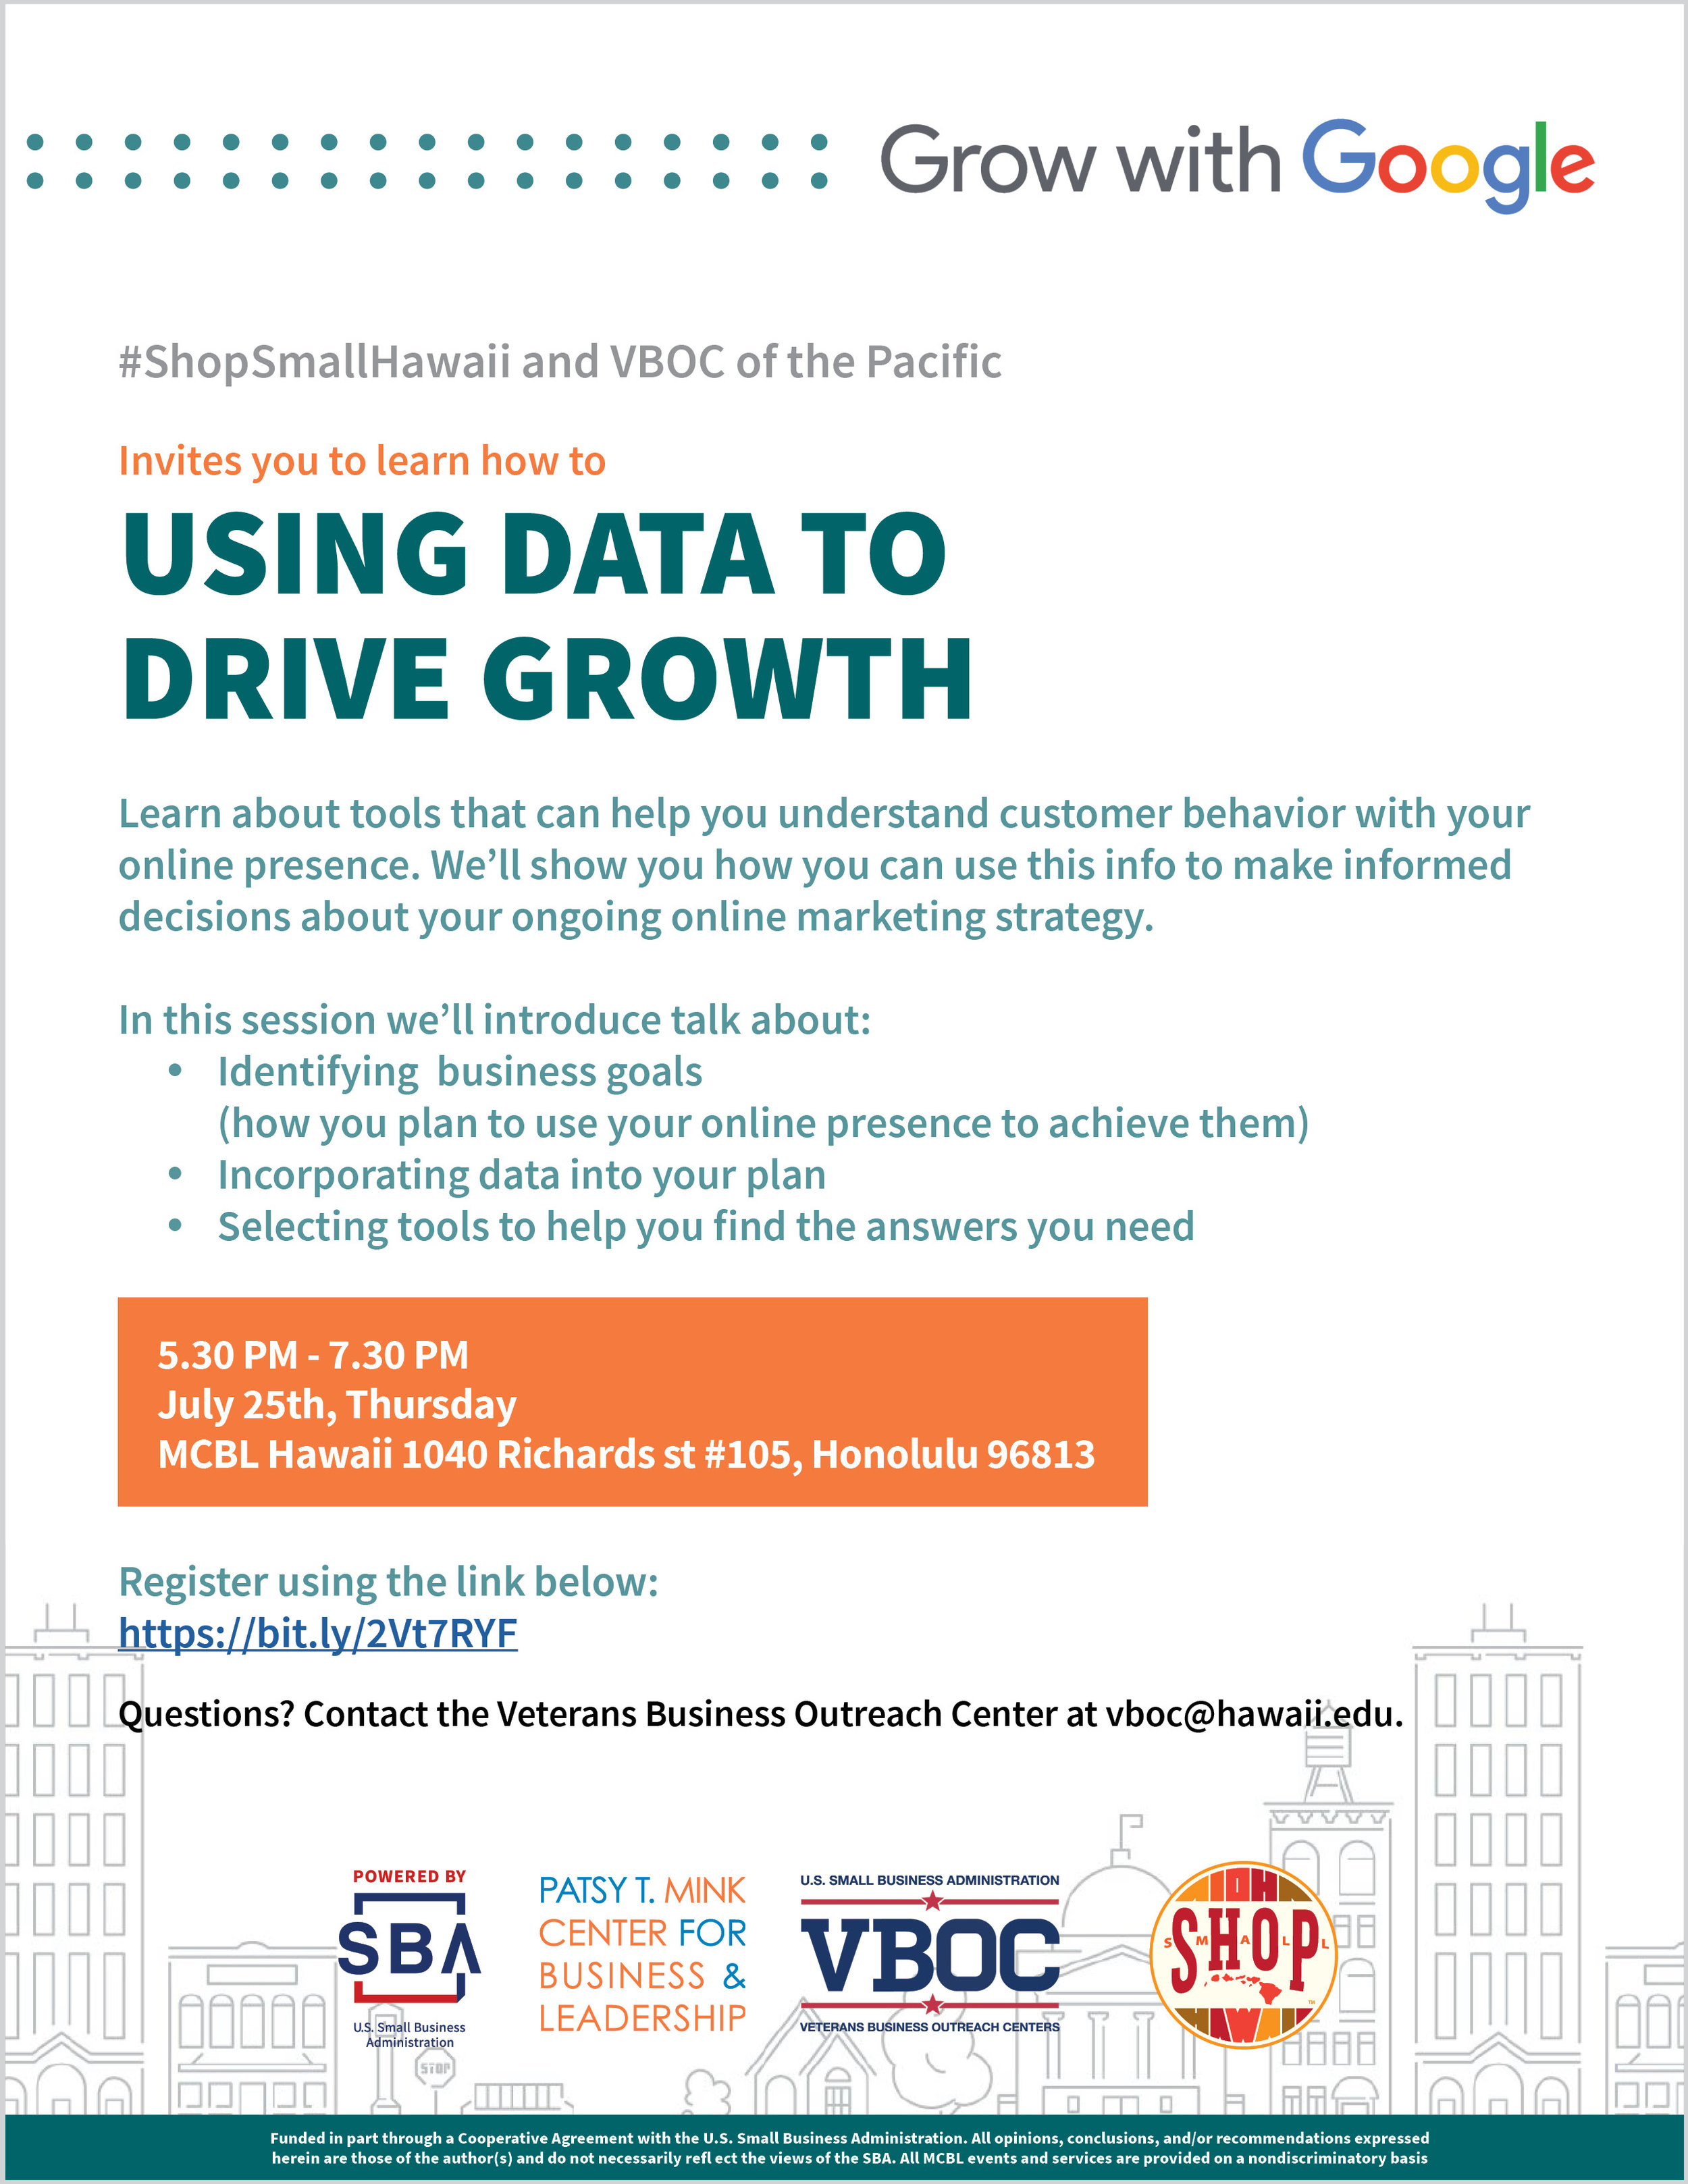 Google Workshop Flyer - Using Data to Drive Growth.jpg